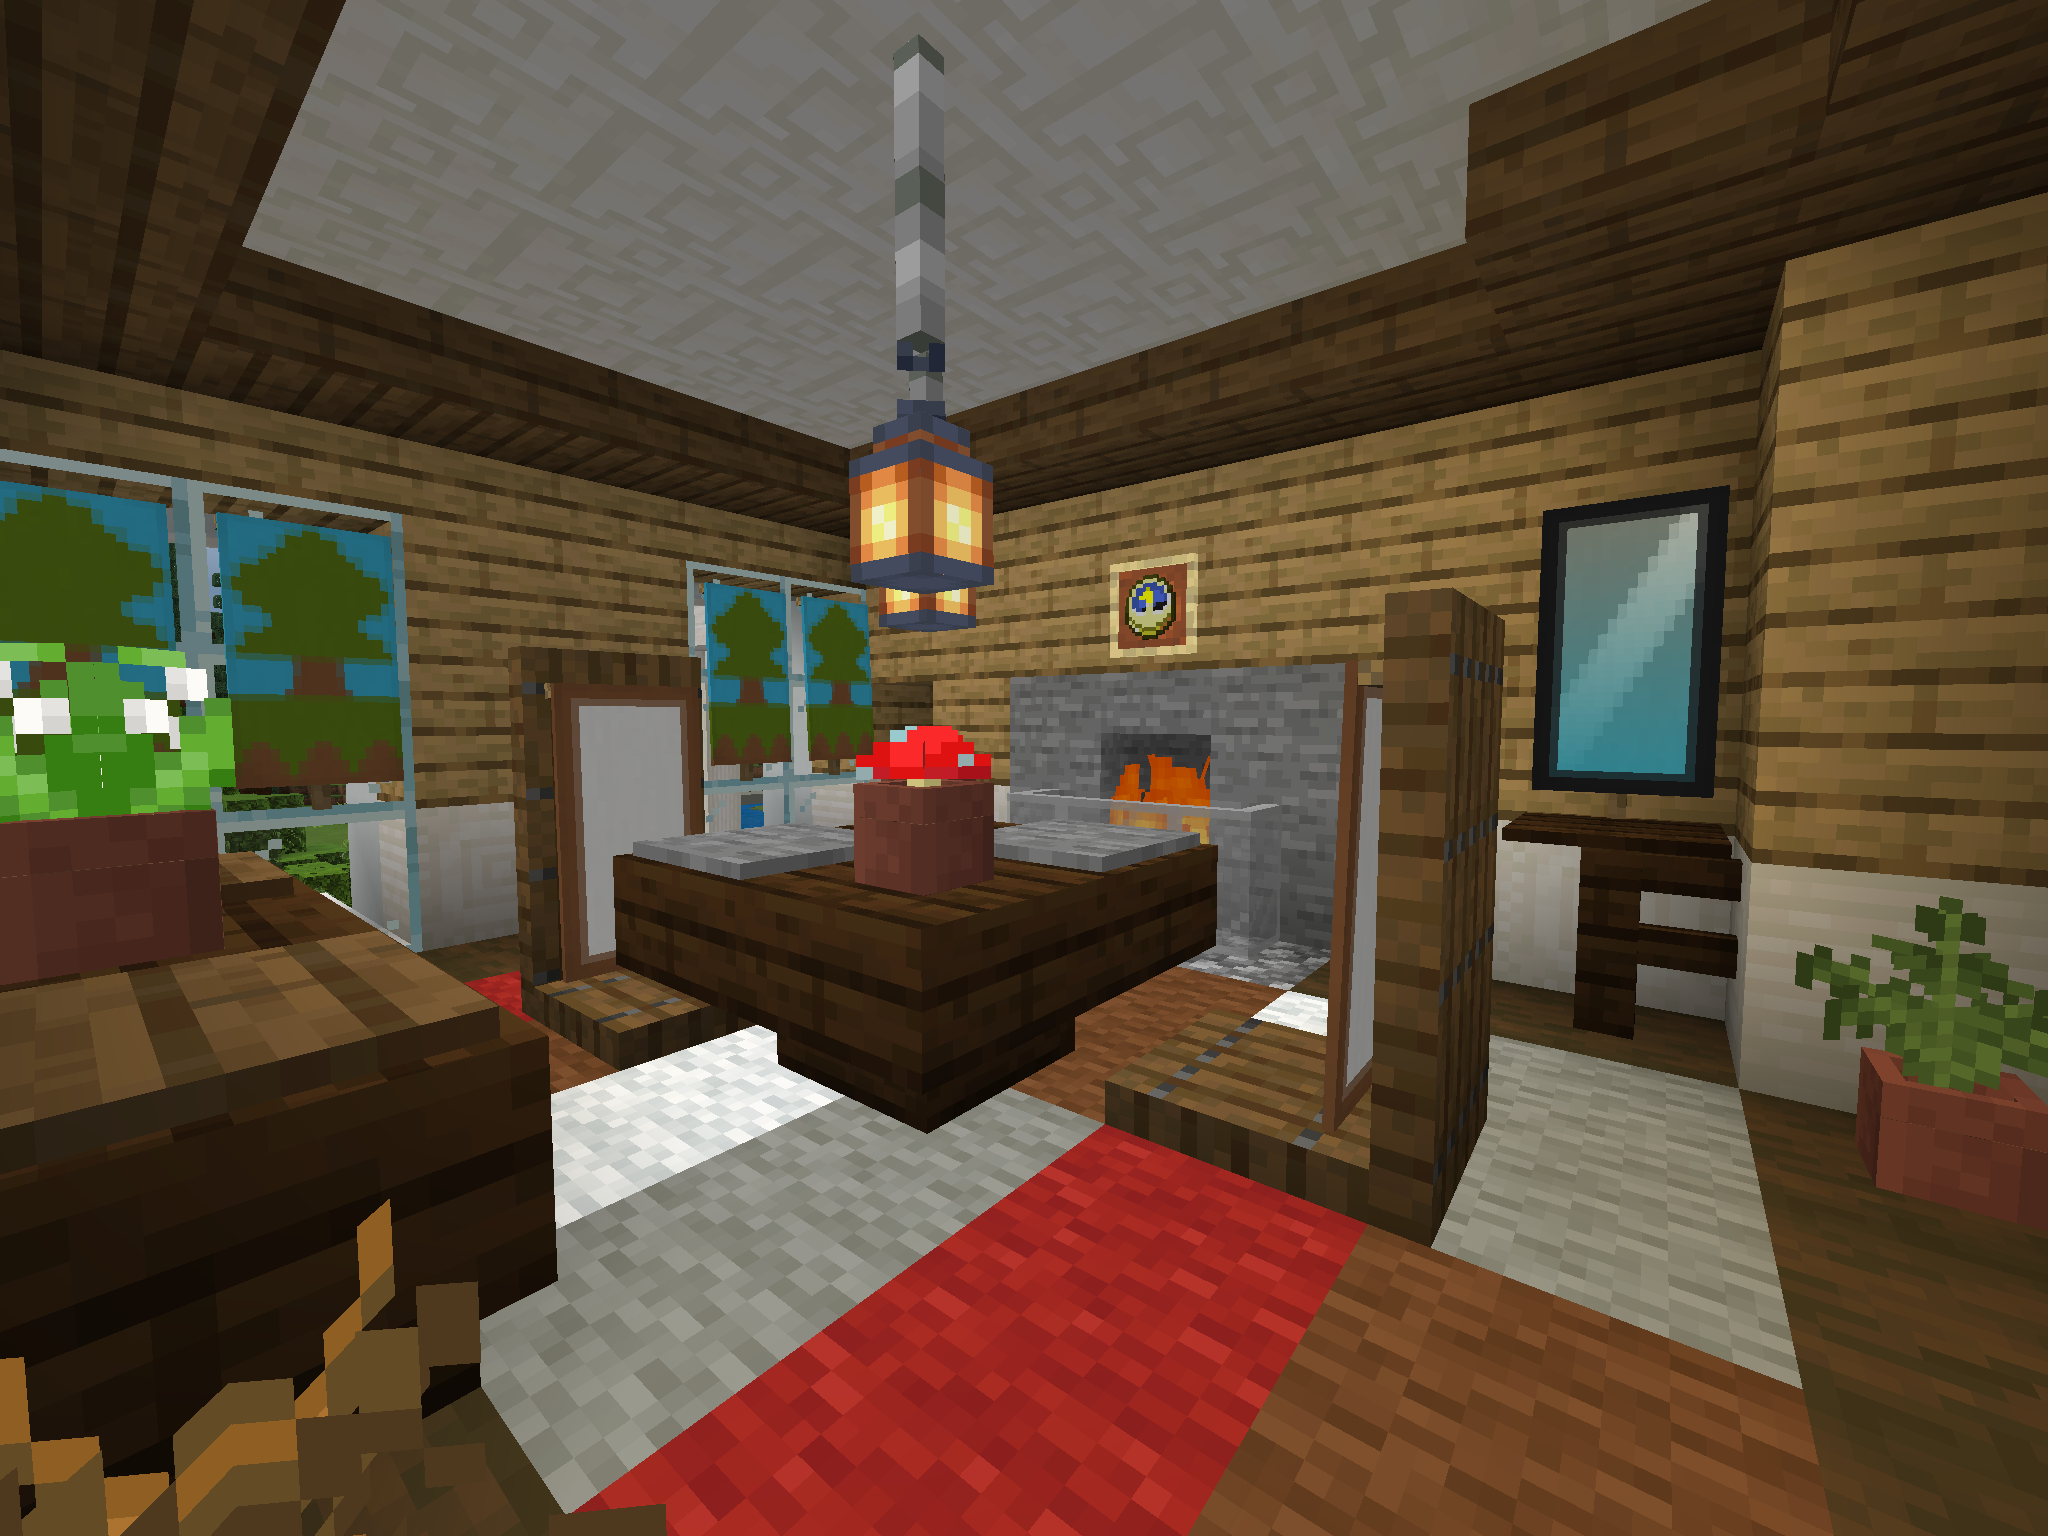 minecraft houses ideas inside